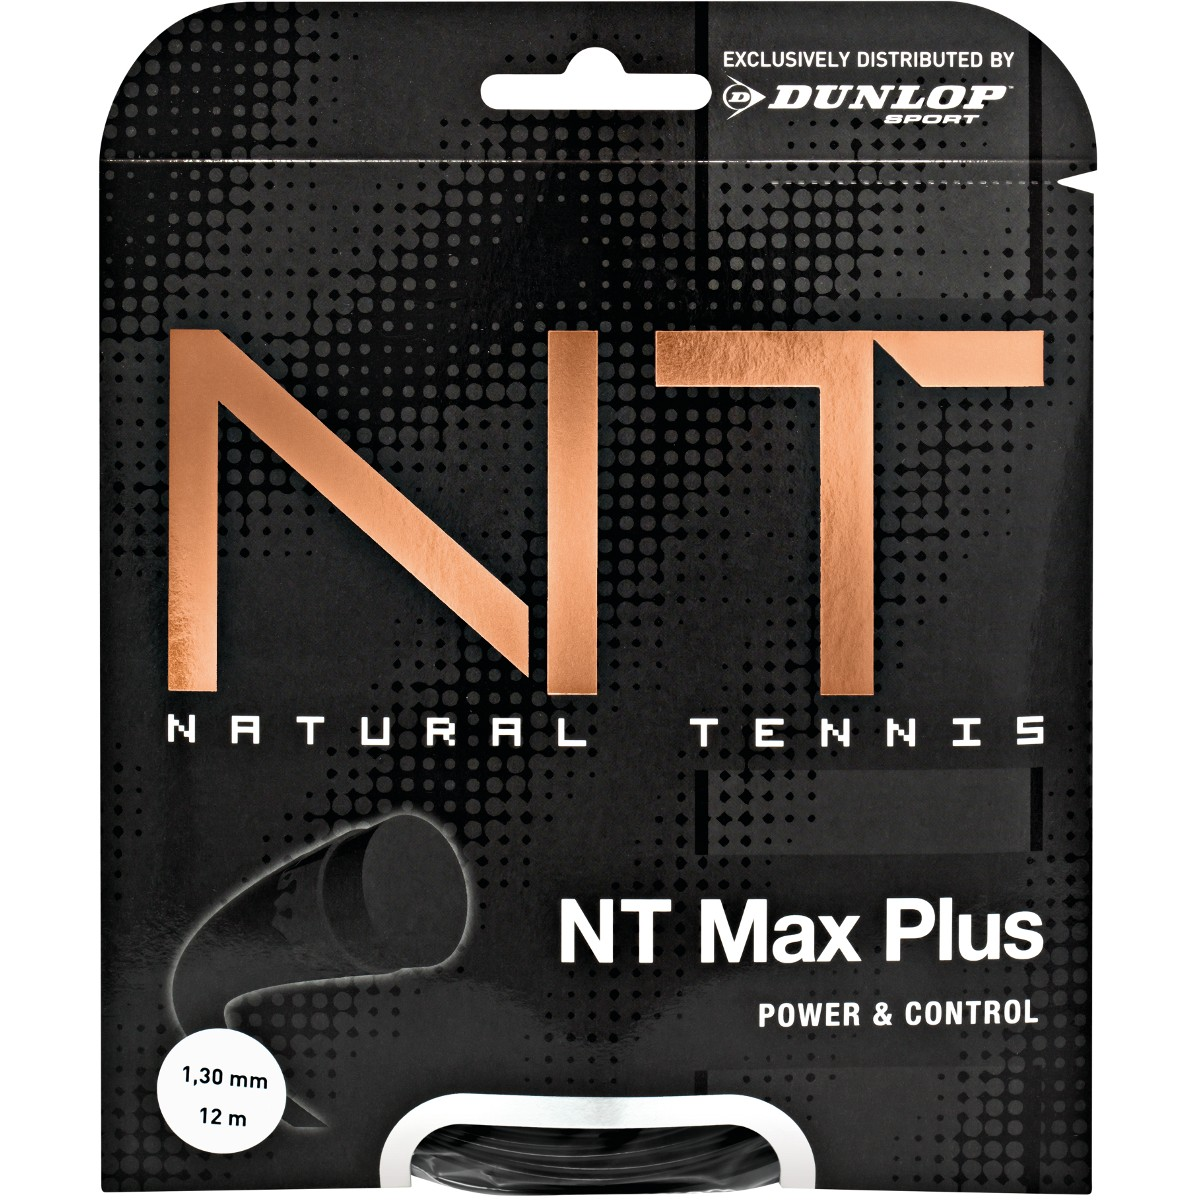 DUNLOP NT MAX PLUS (12 METRES) STRING PACK